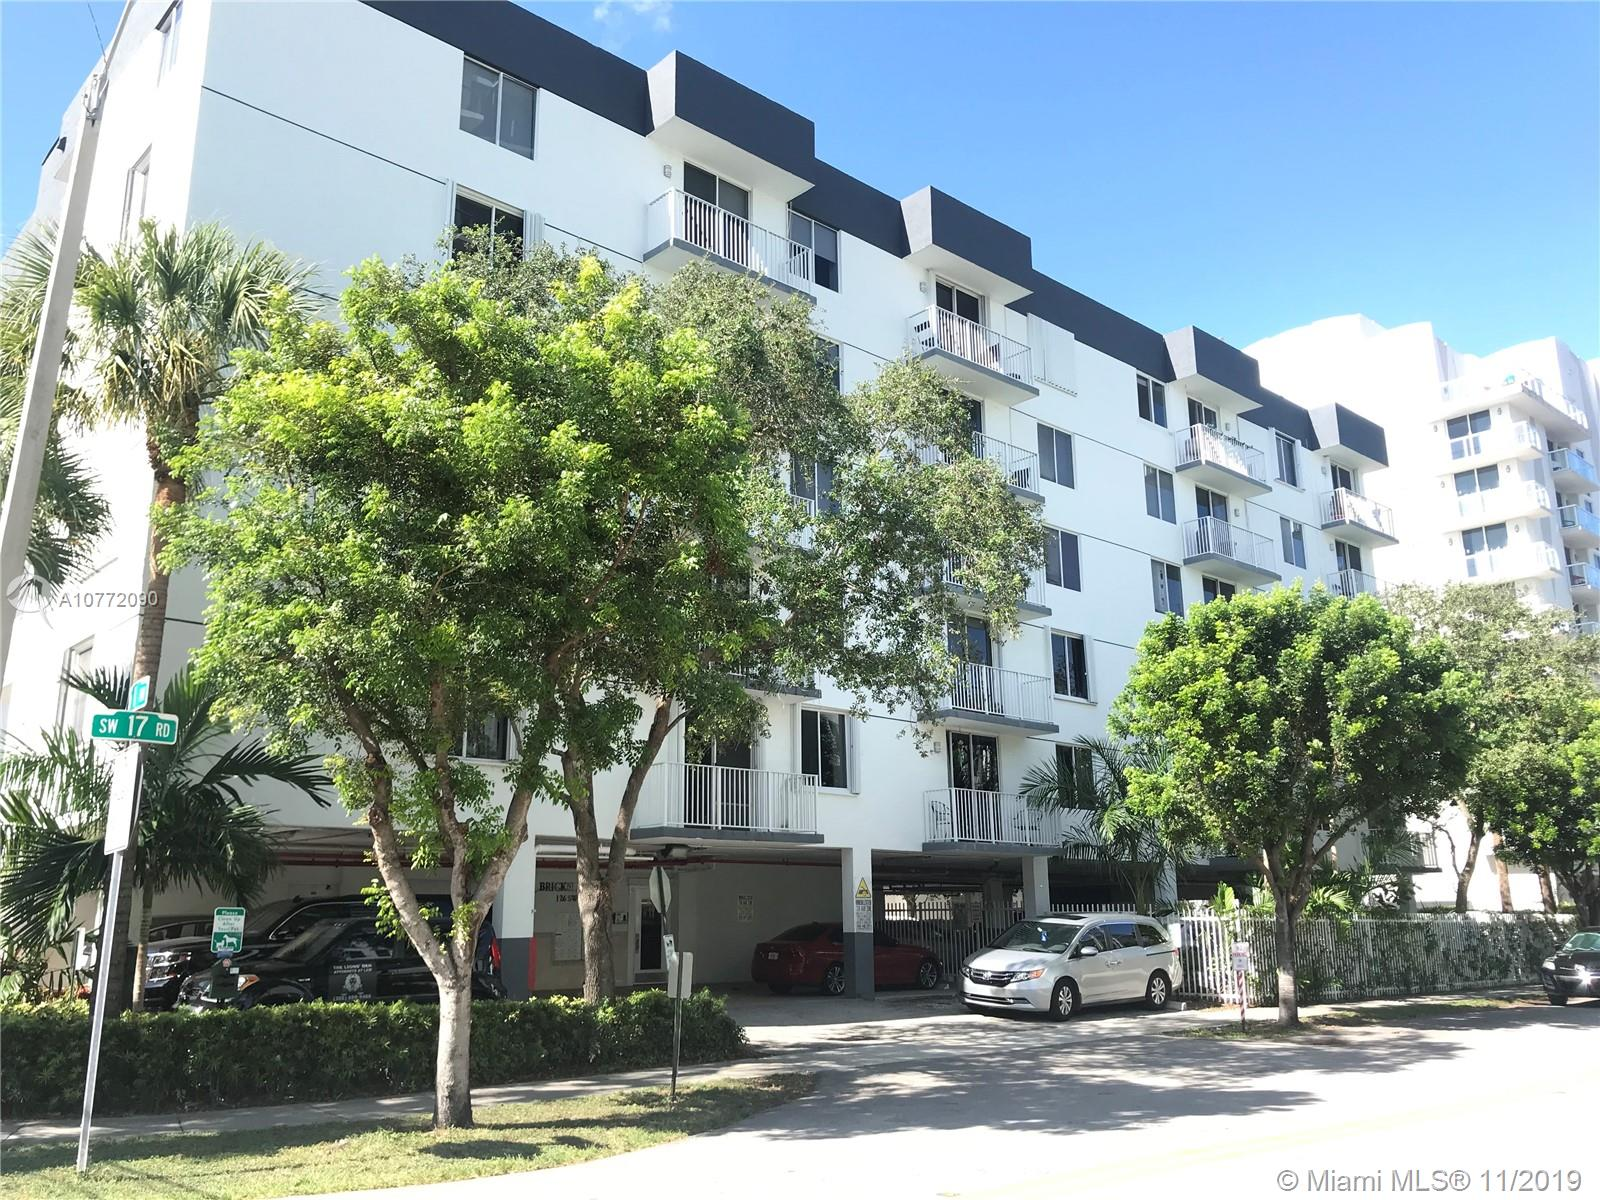 126 SW 17th Rd #204 For Sale A10772090, FL